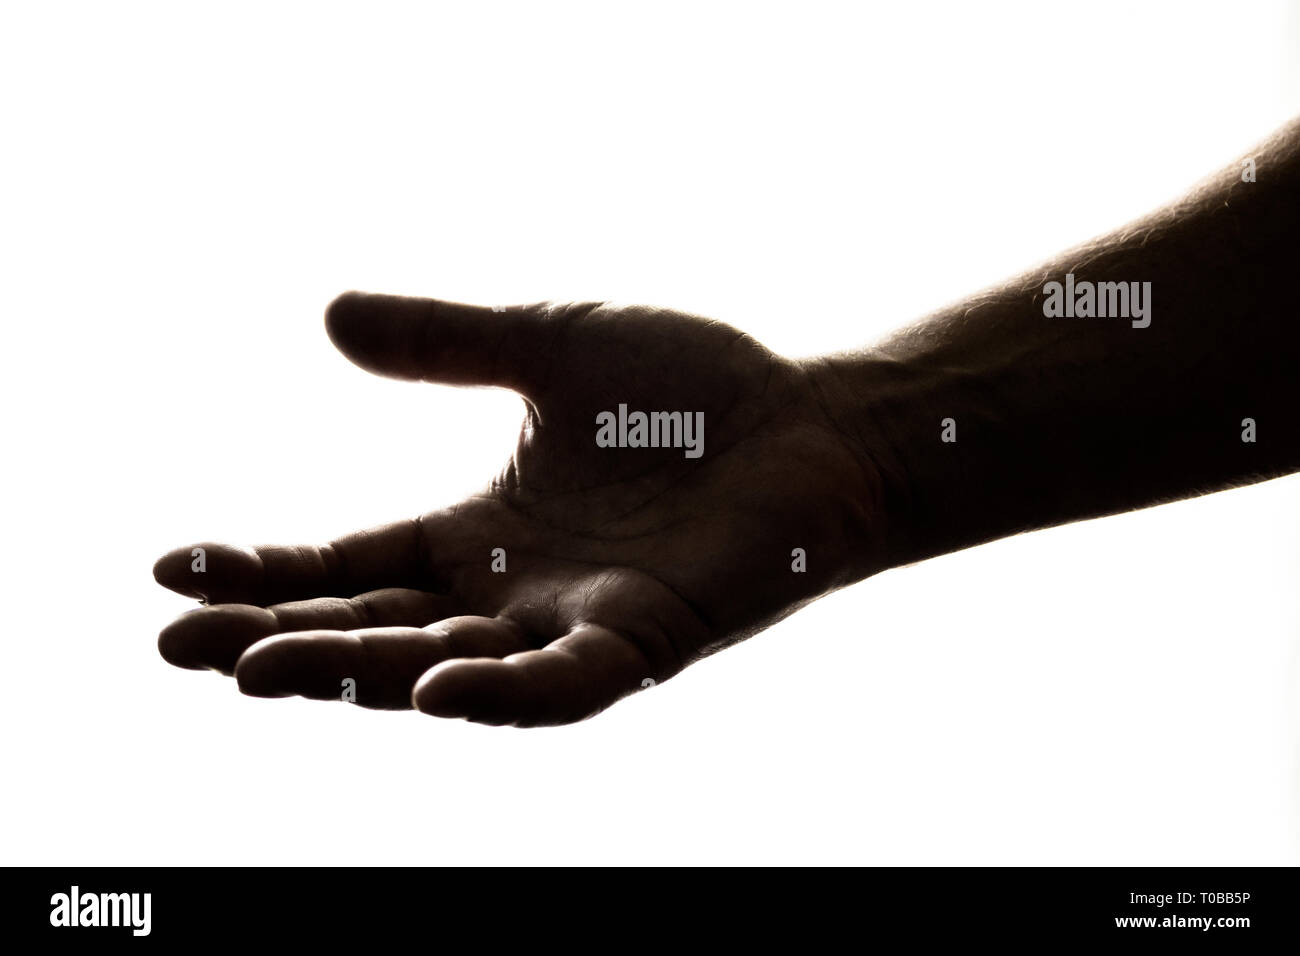 Silhouette of hand reaching out to give, or to receive help/money/hope/gift. - Stock Image